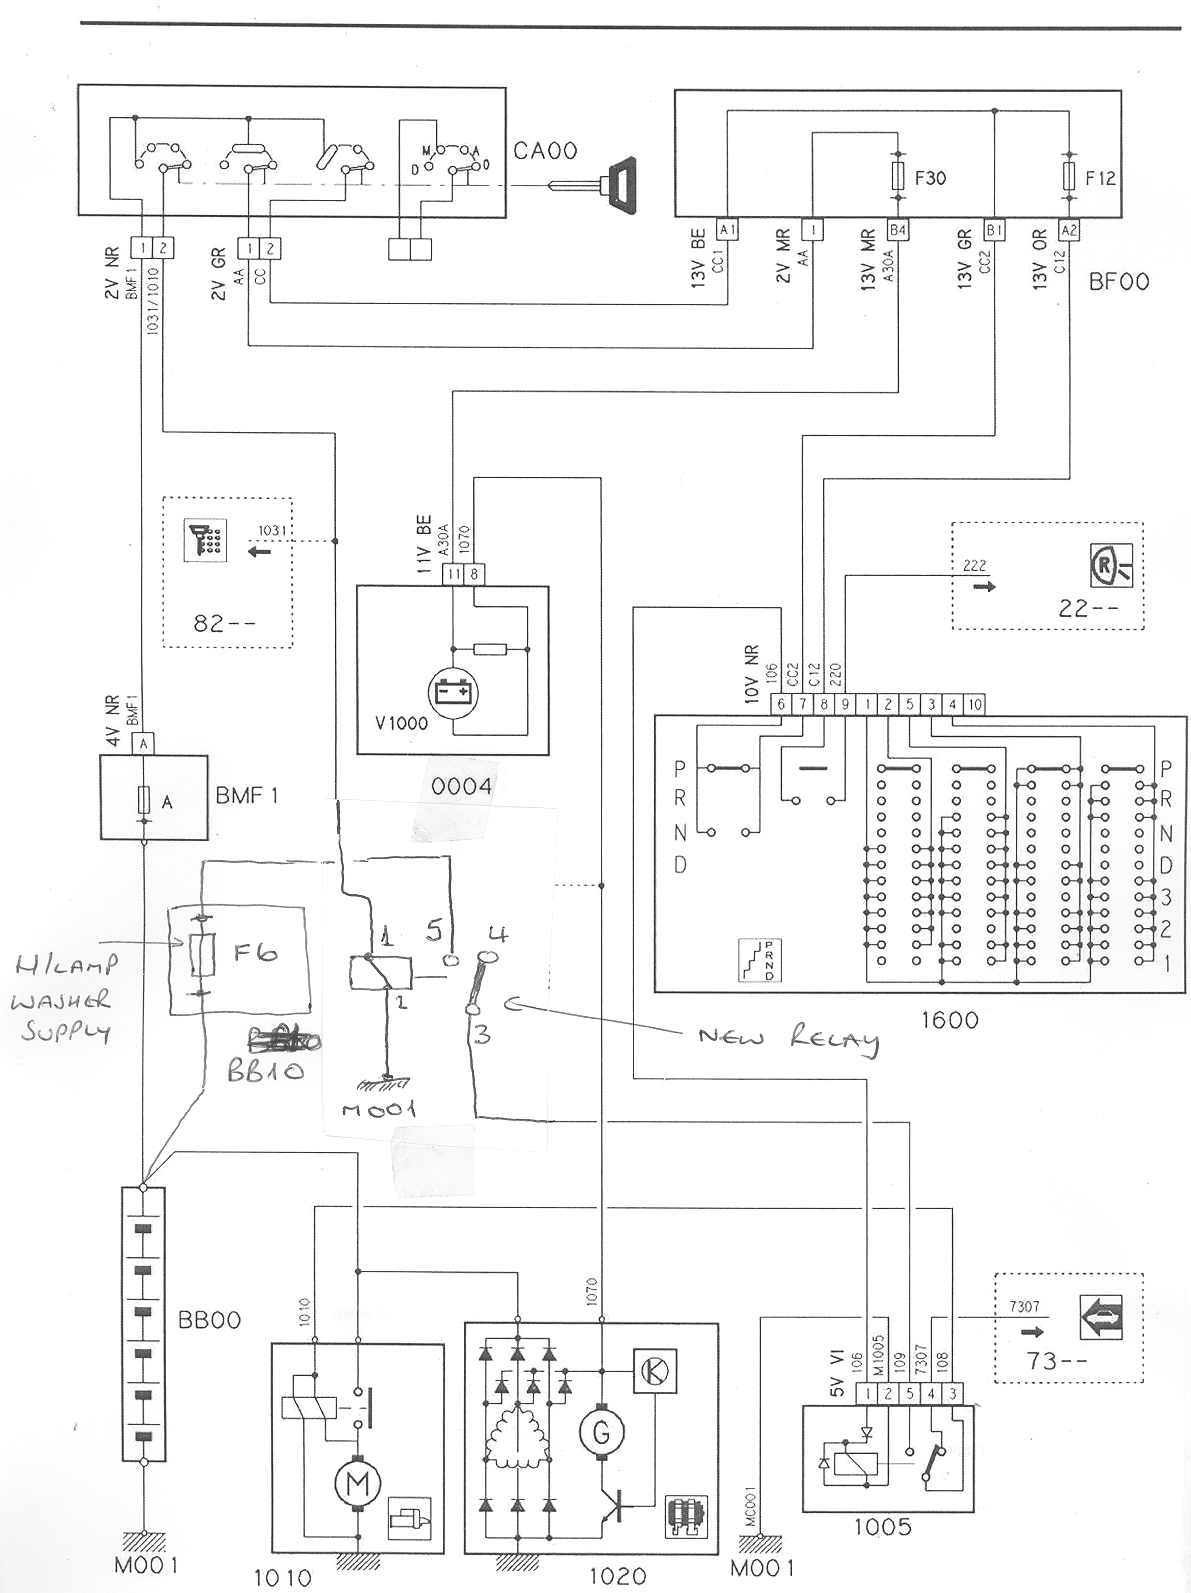 Wiring Diagram For Citroen Relay : Non cranking on td citroen xm forum